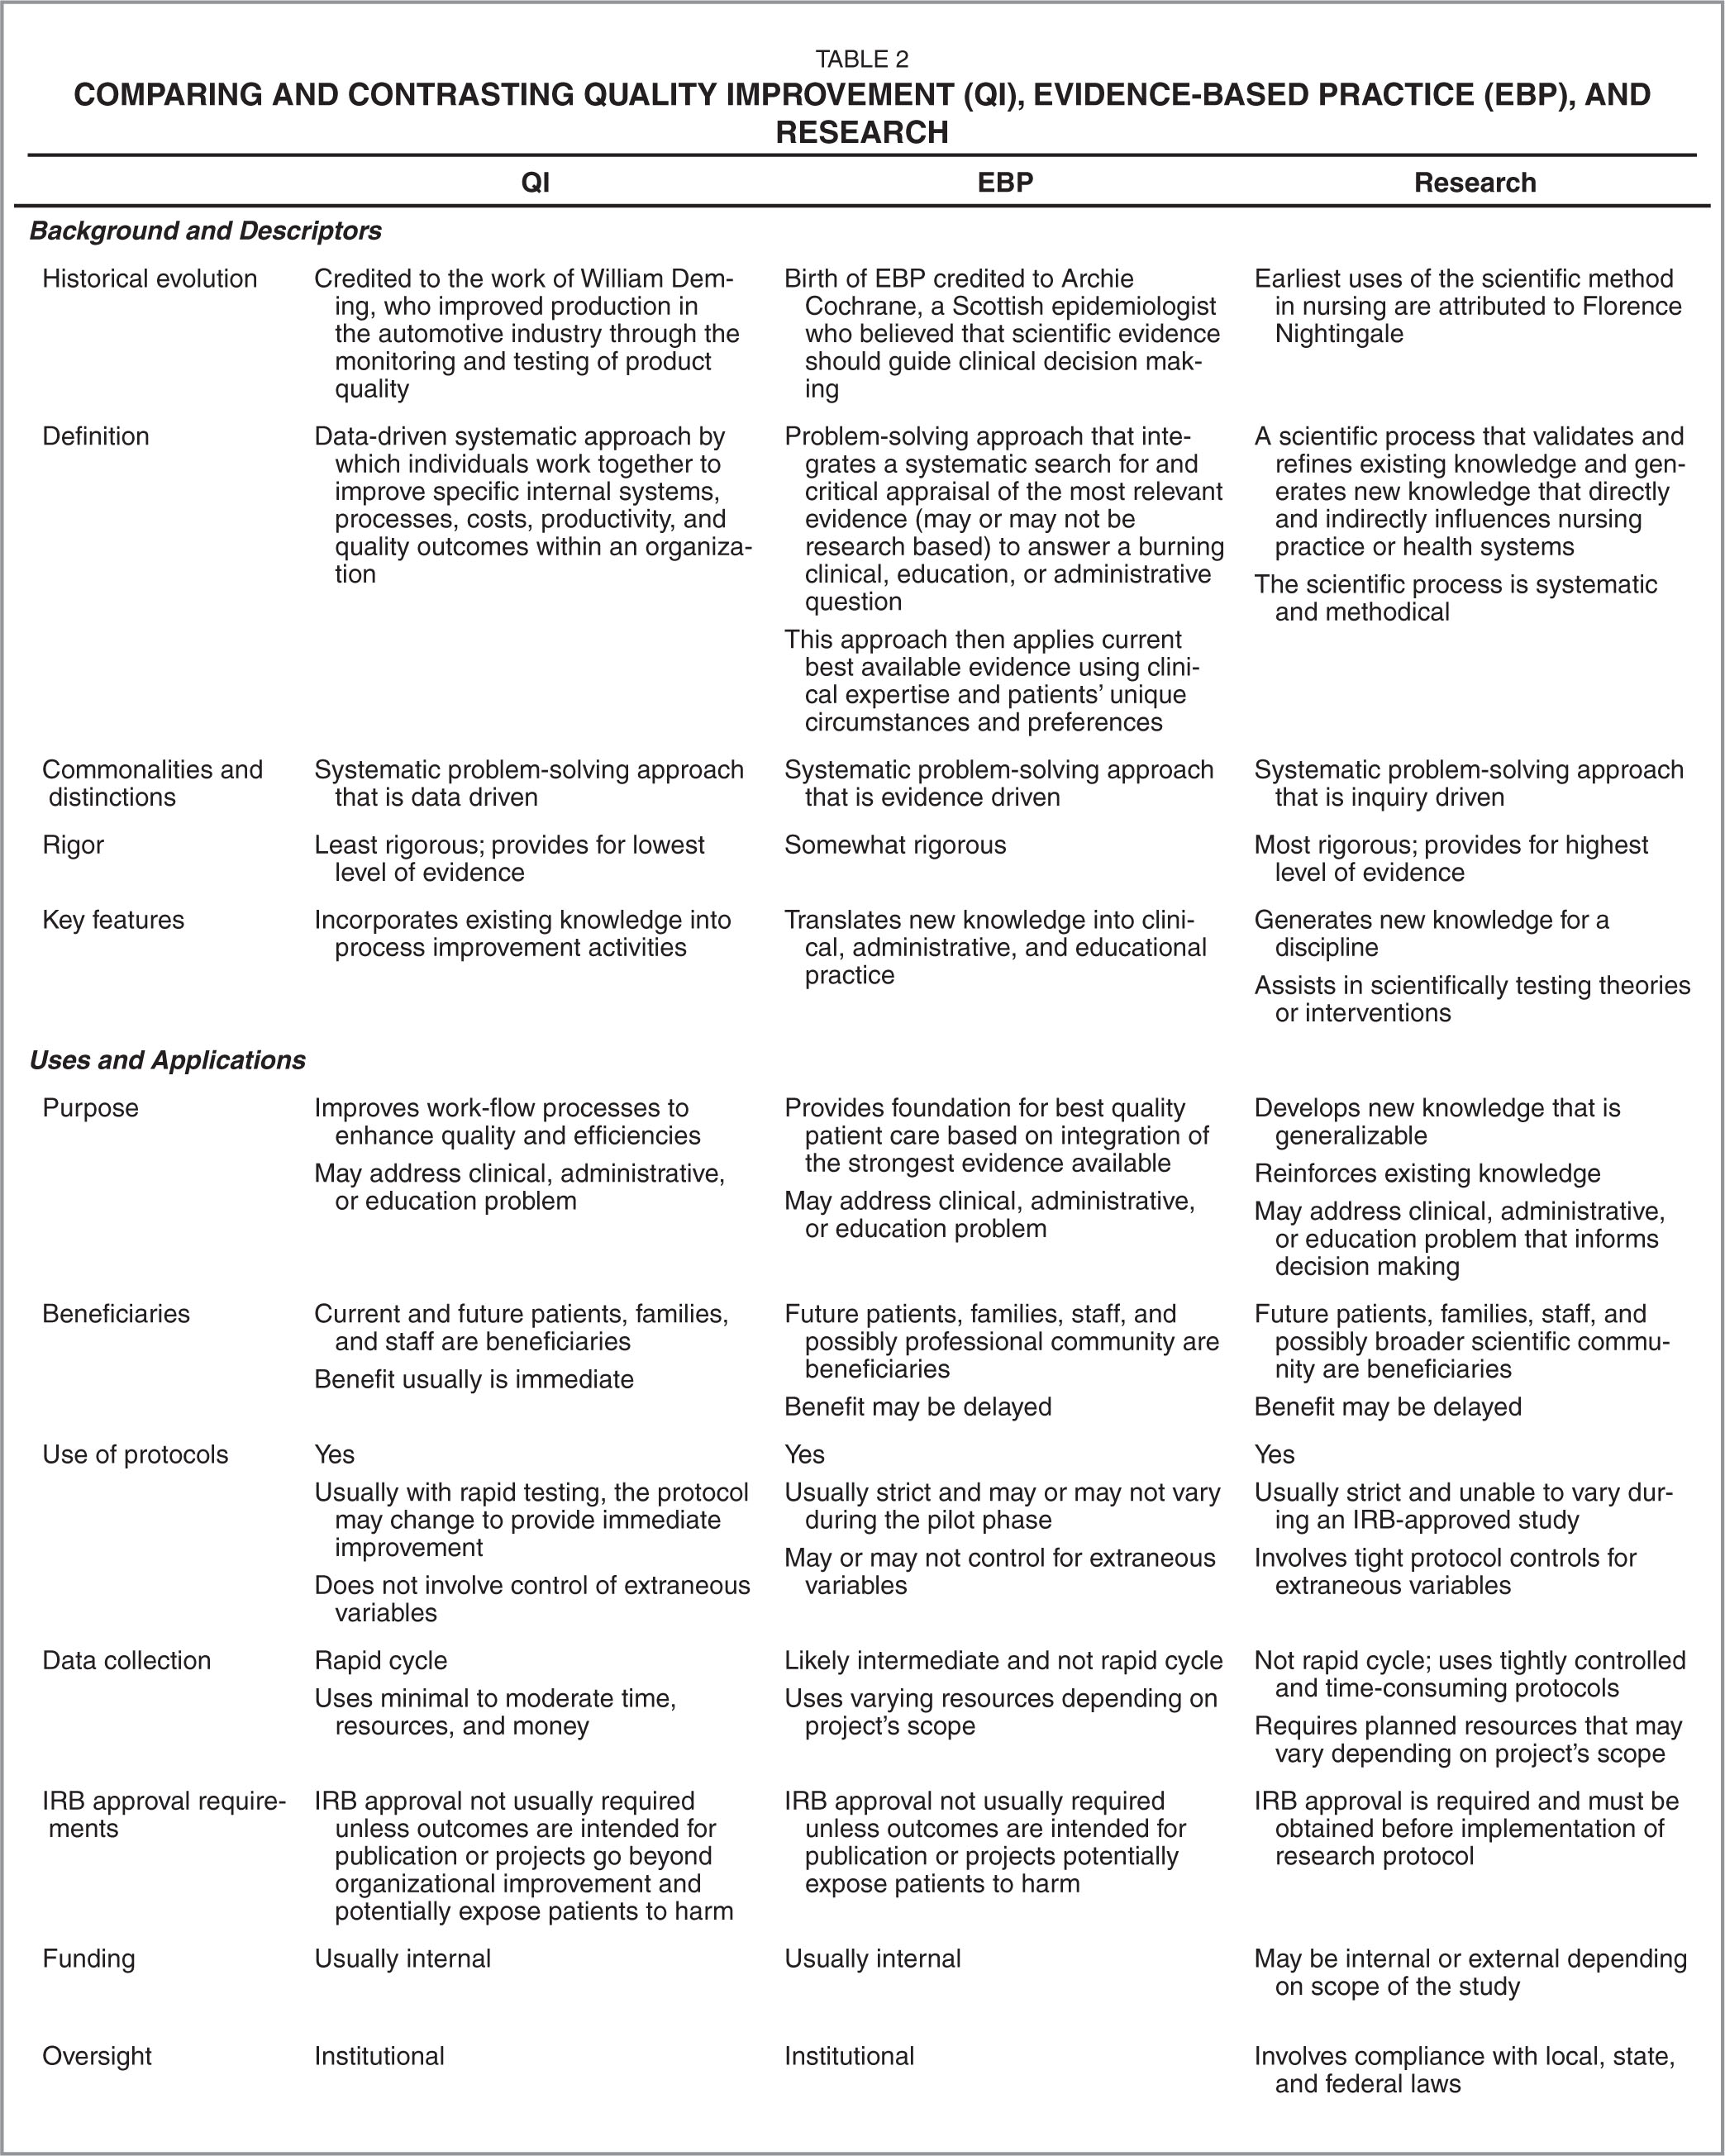 Comparing and Contrasting Quality Improvement (QI), Evidence-Based Practice (EBP), and Research